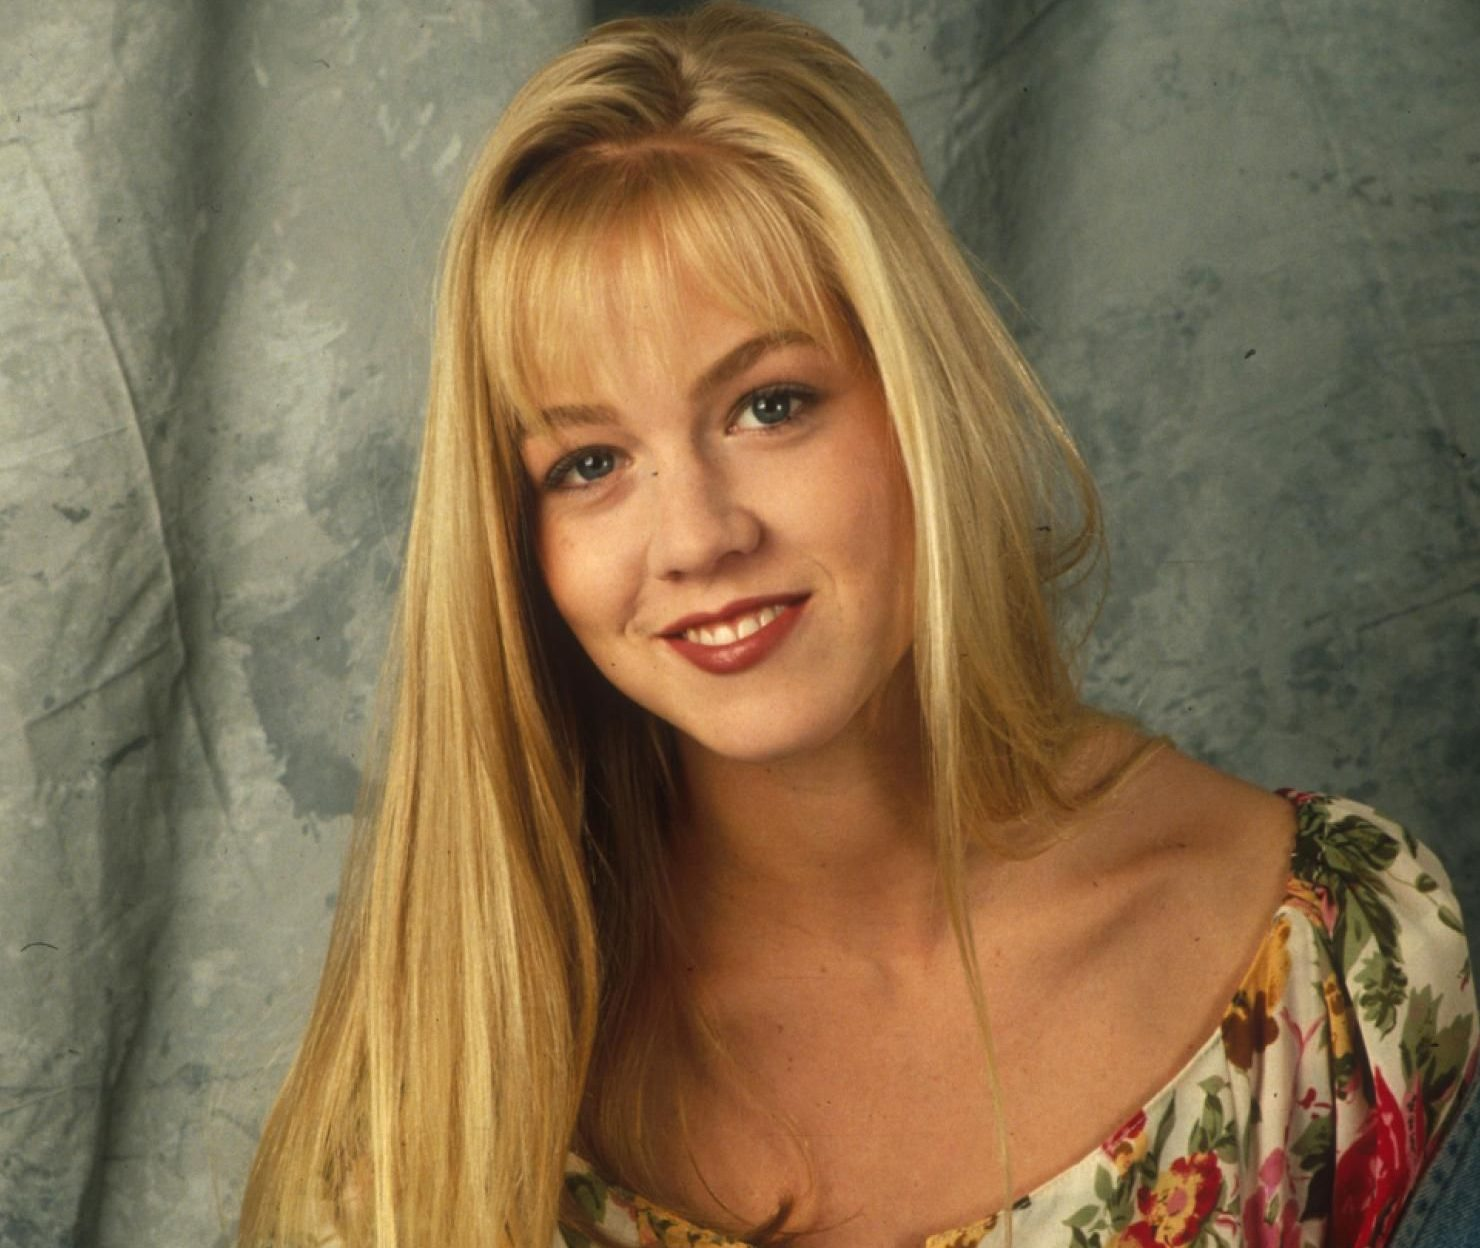 68918bff9672b269ad1b35ffe65eca27 e1605279050541 21 90s TV Actresses We All Had A Crush On When We Were Younger